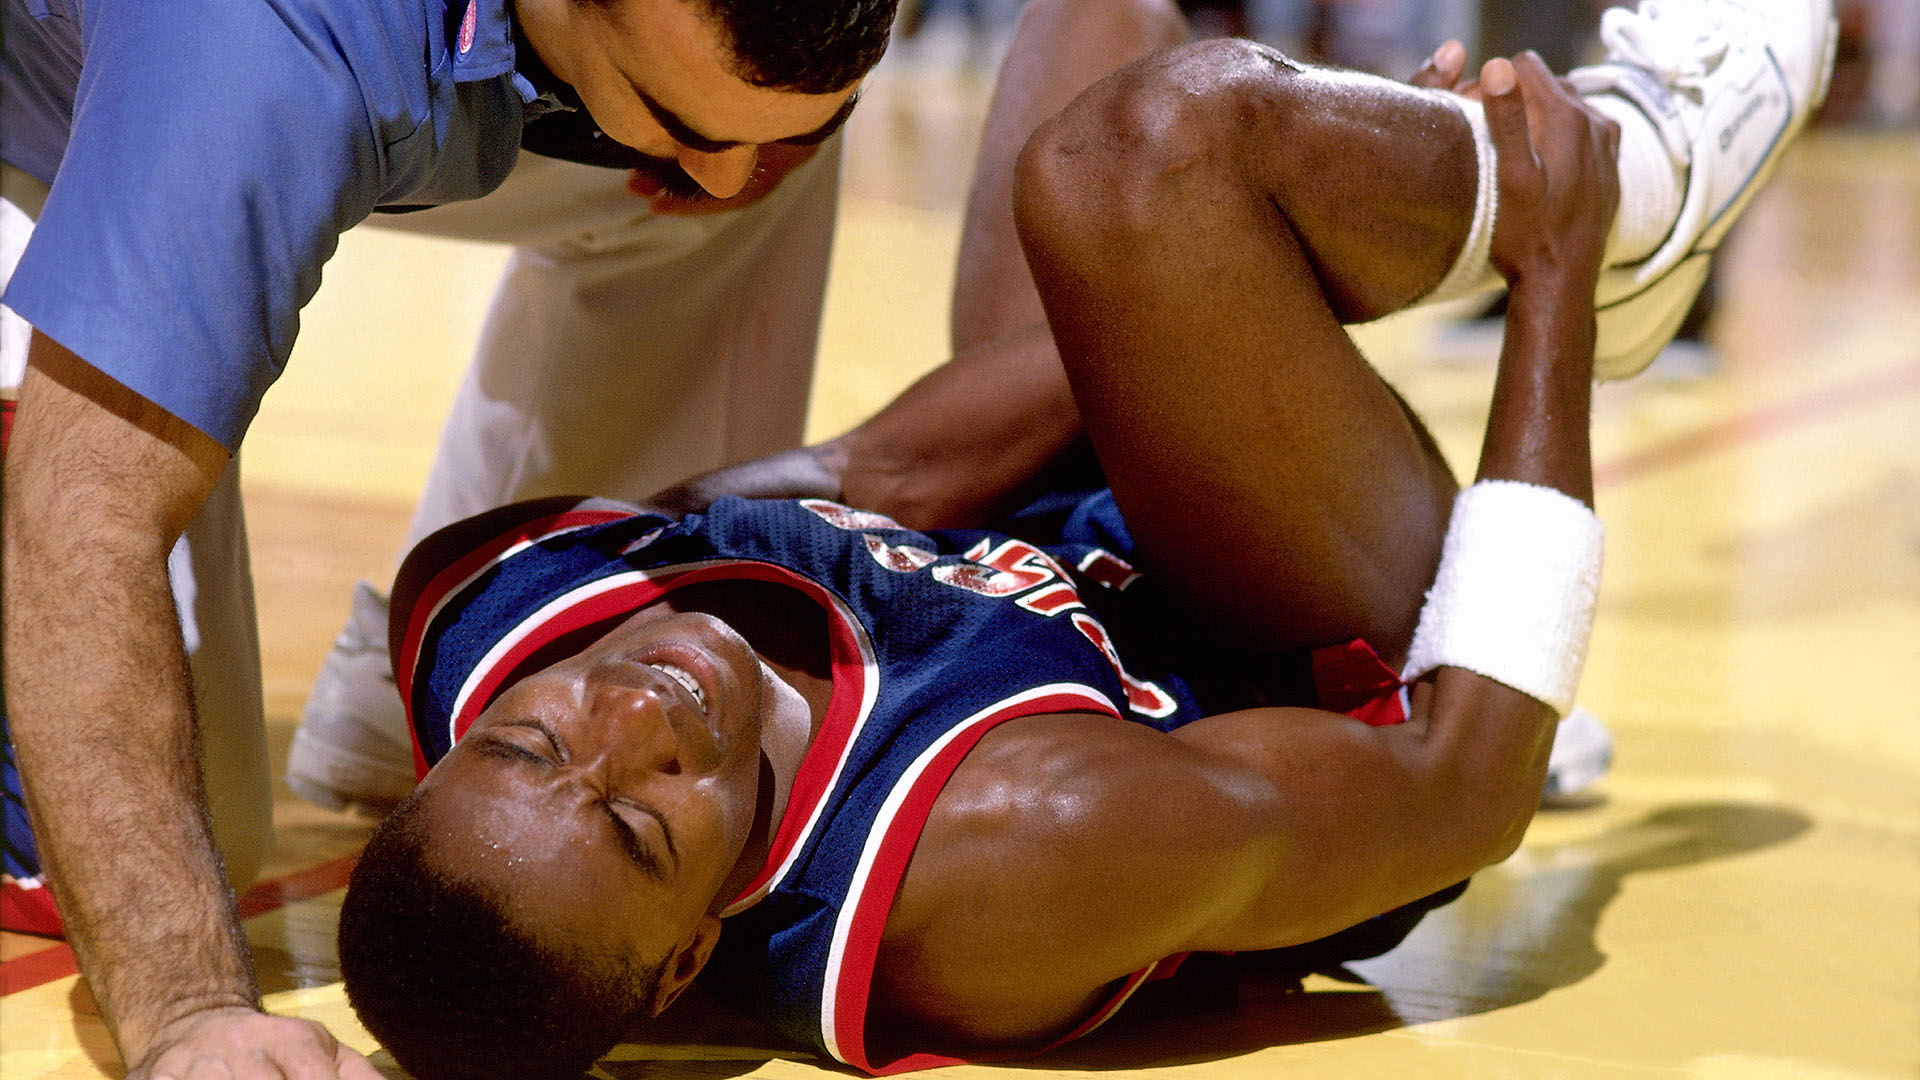 Top NBA Finals moments: Isiah Thomas scores 25 in quarter on injured ankle